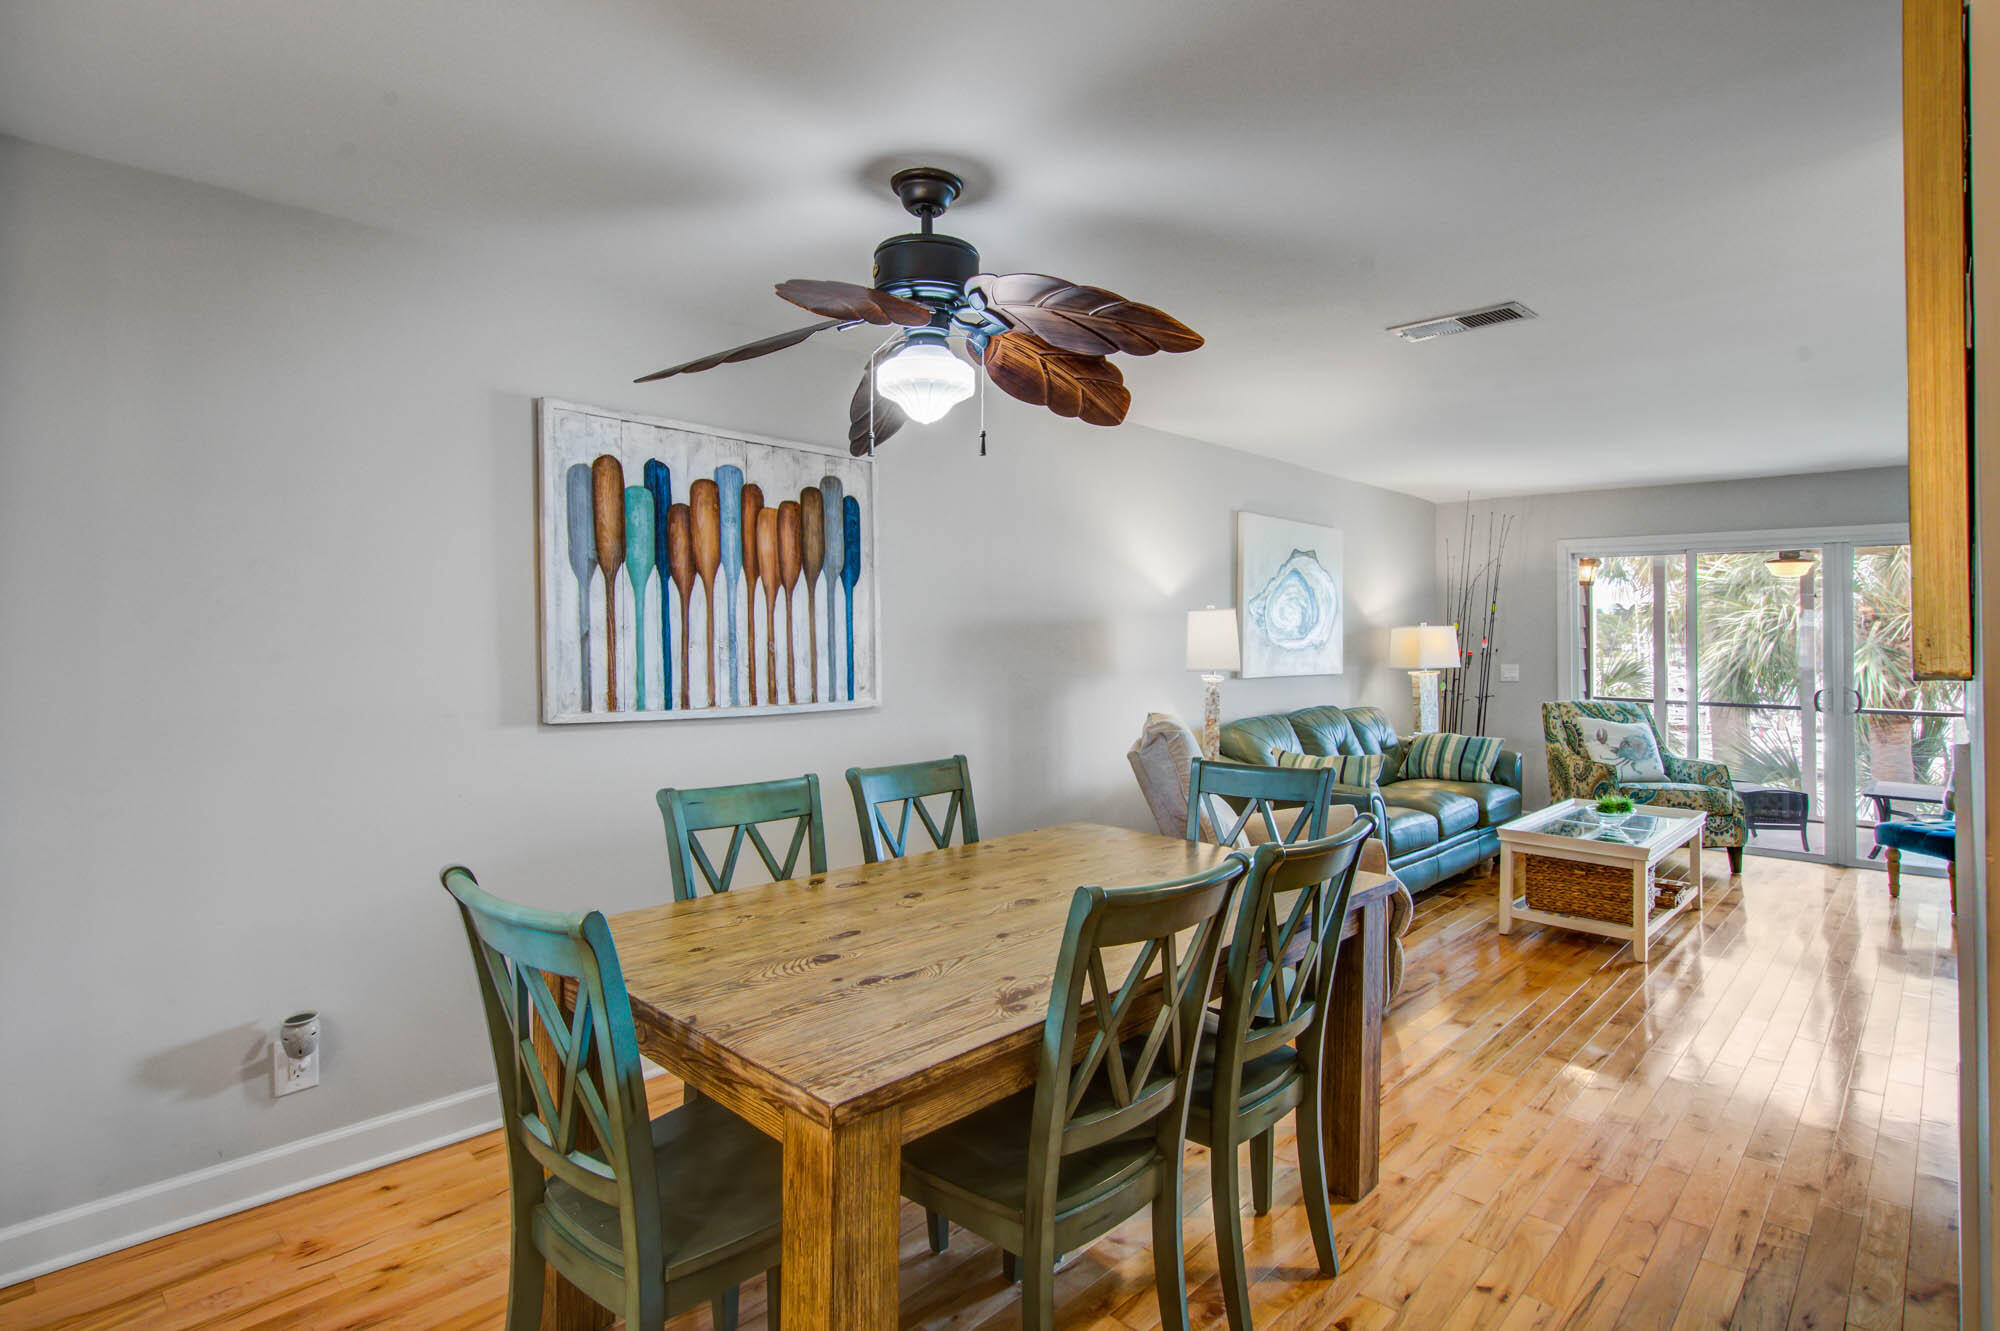 Mariners Cay Homes For Sale - 56 Mariners Cay, Folly Beach, SC - 12